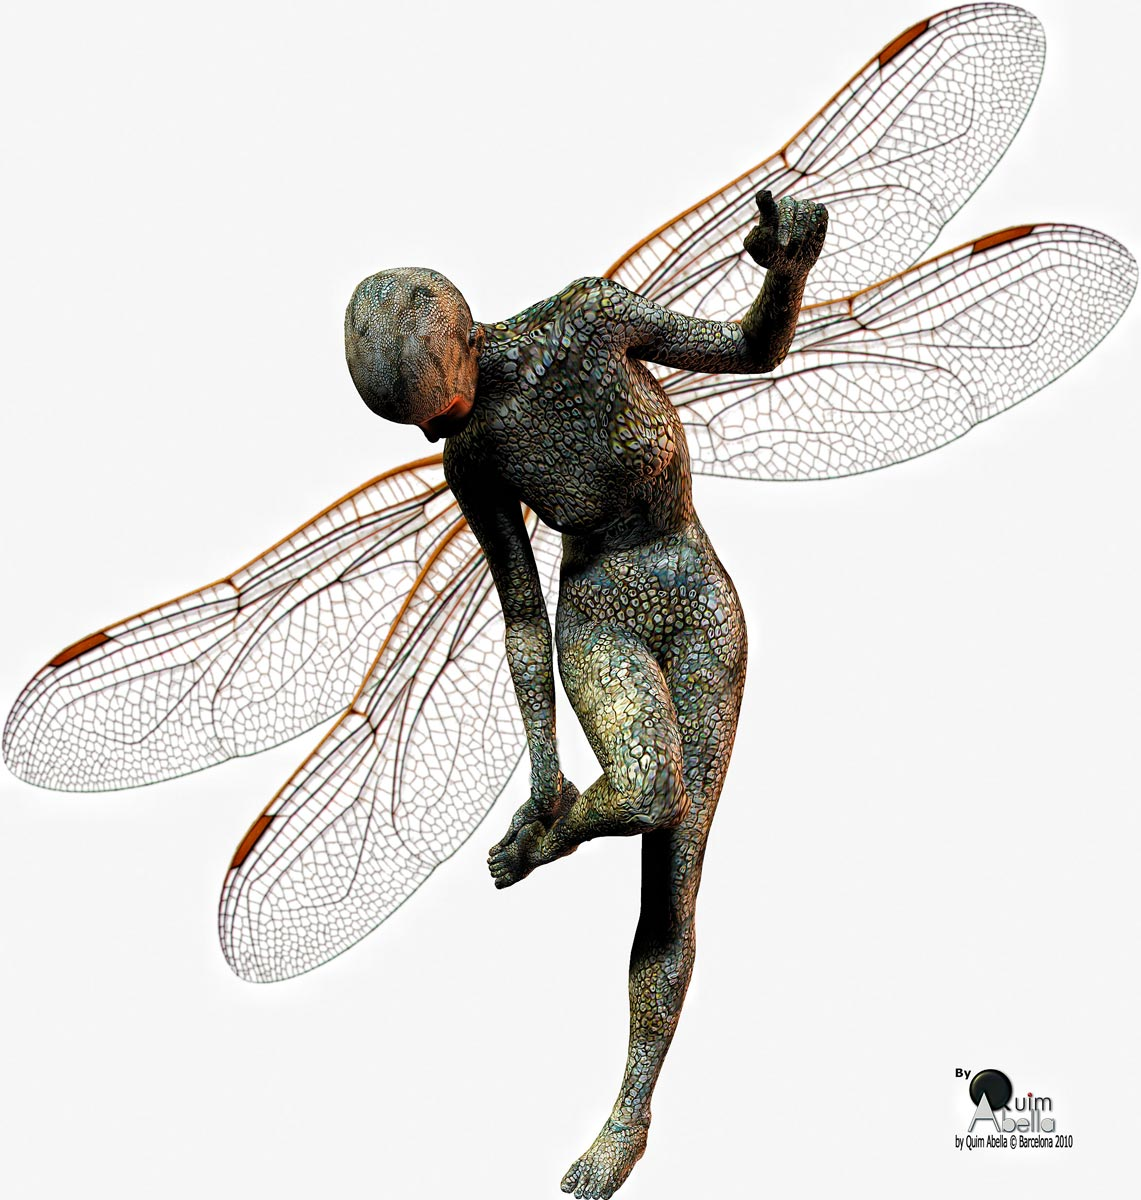 Wings of dragonfly